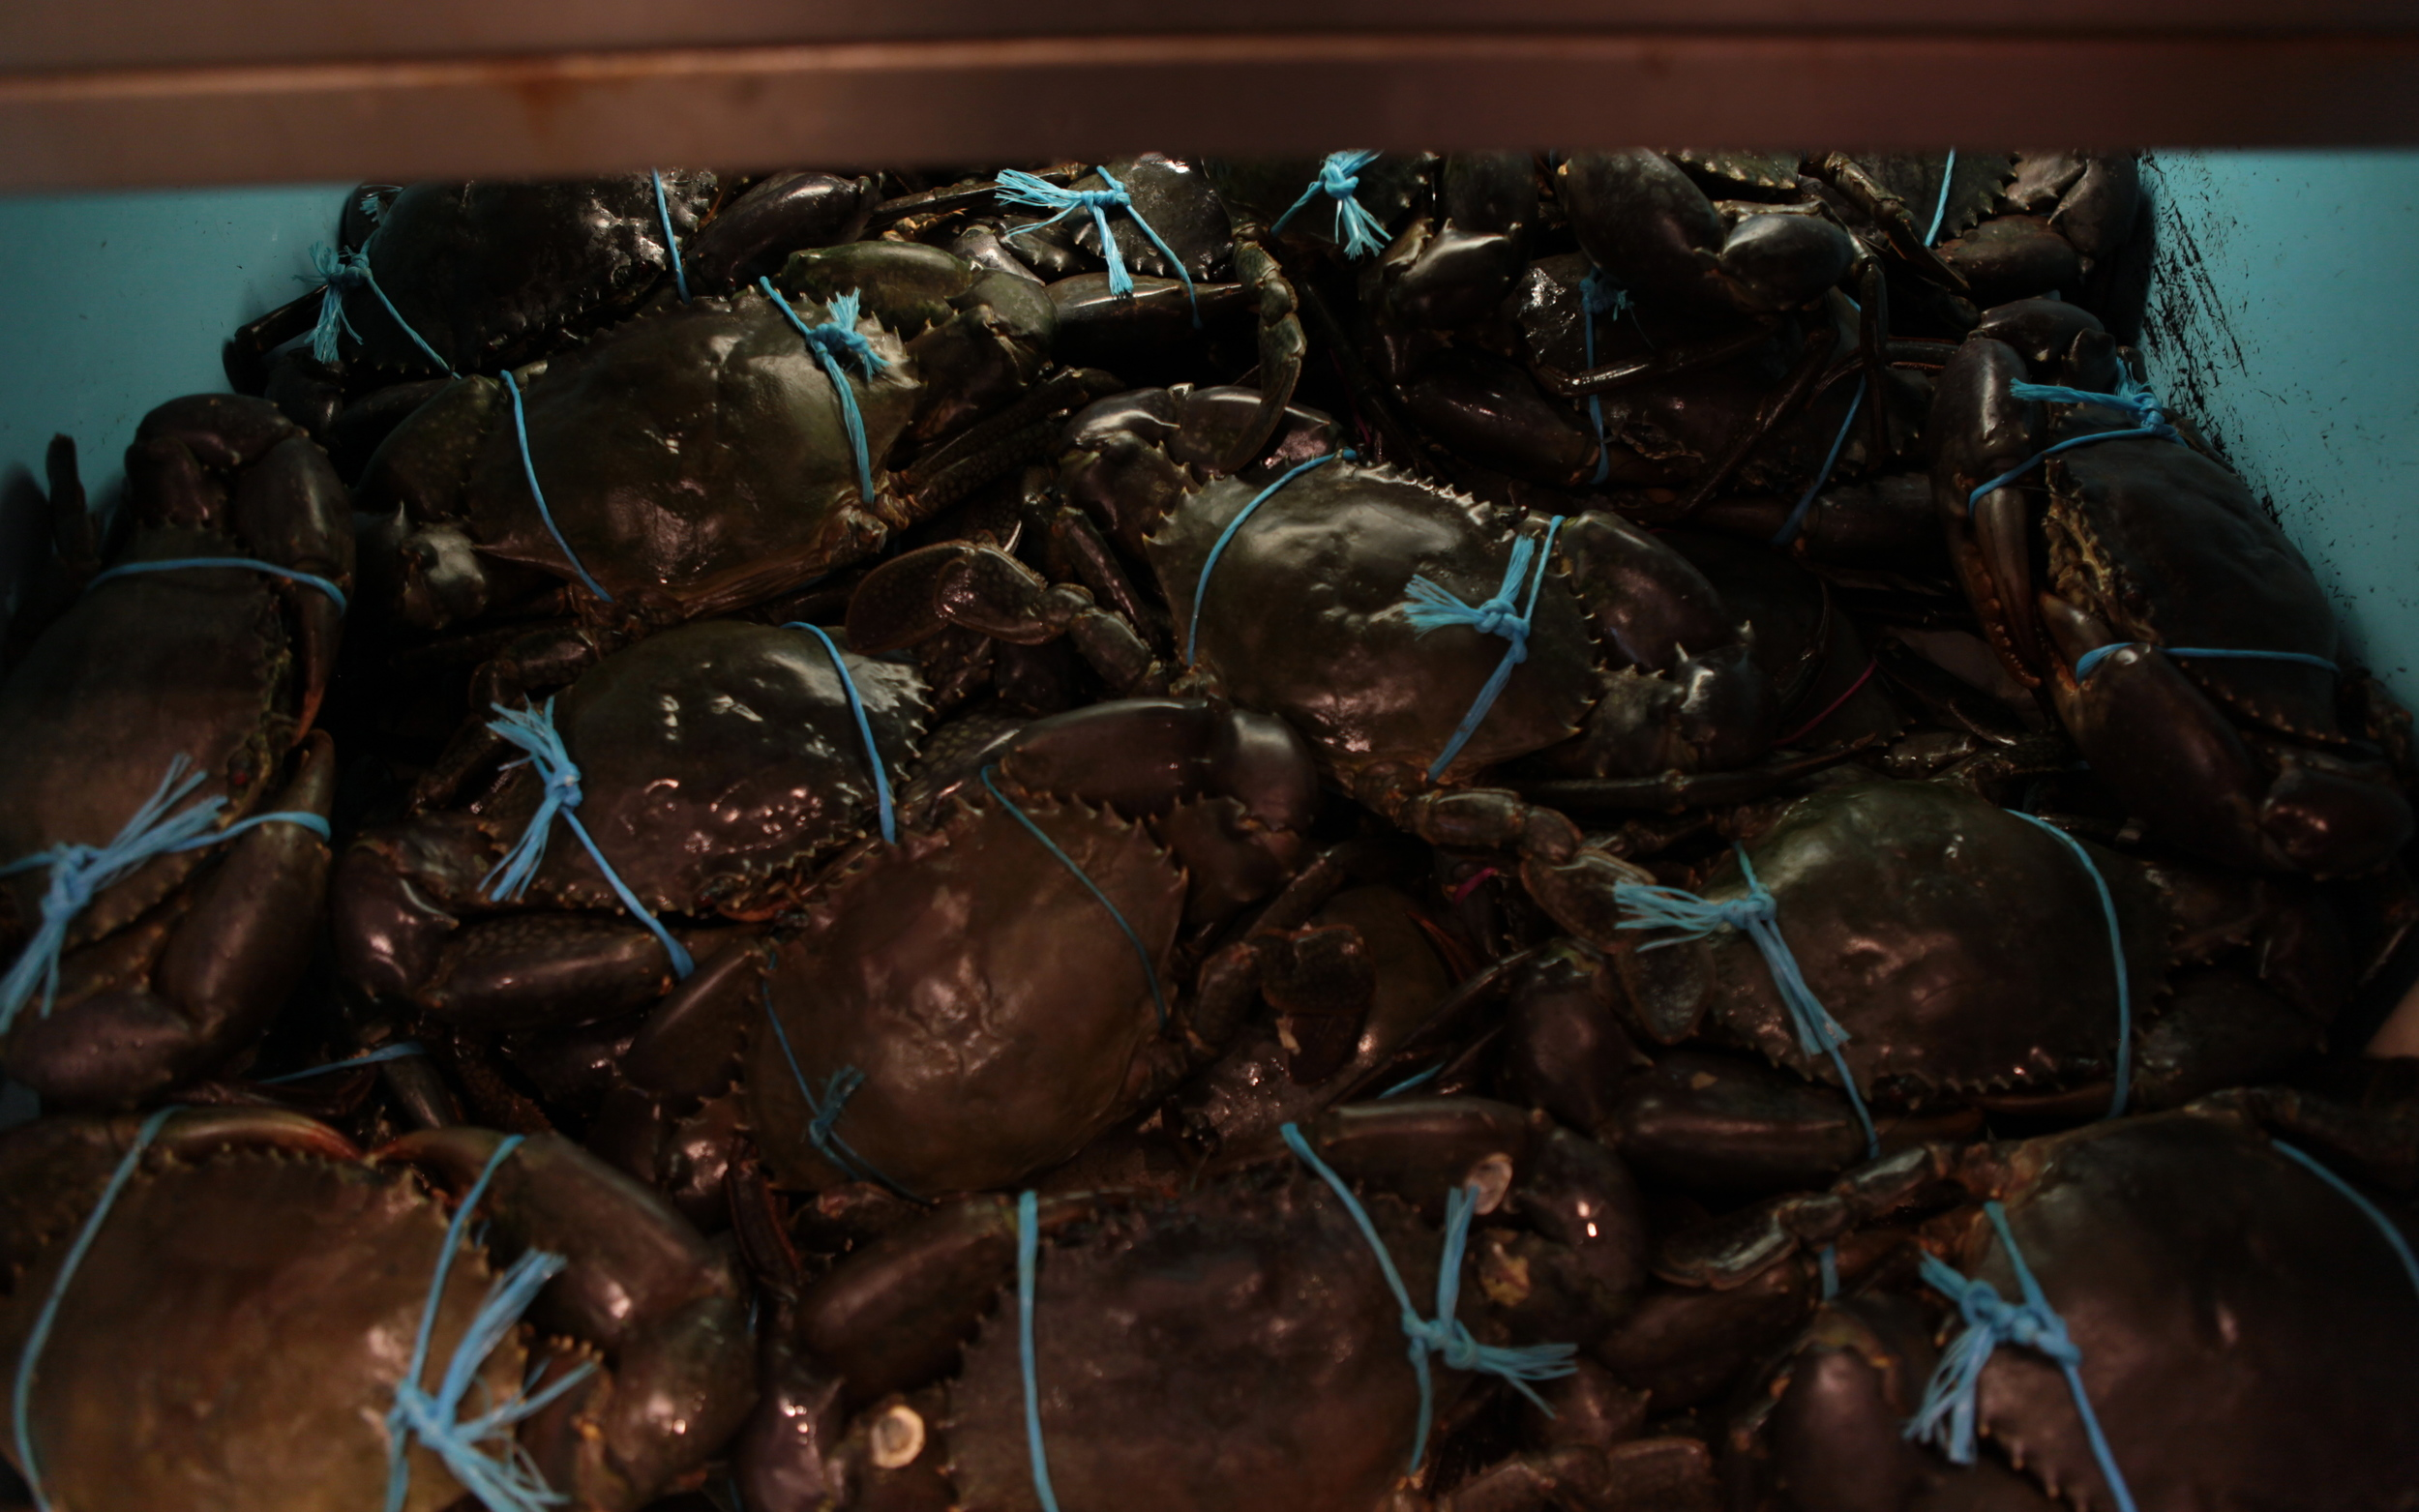 Endless Crabs